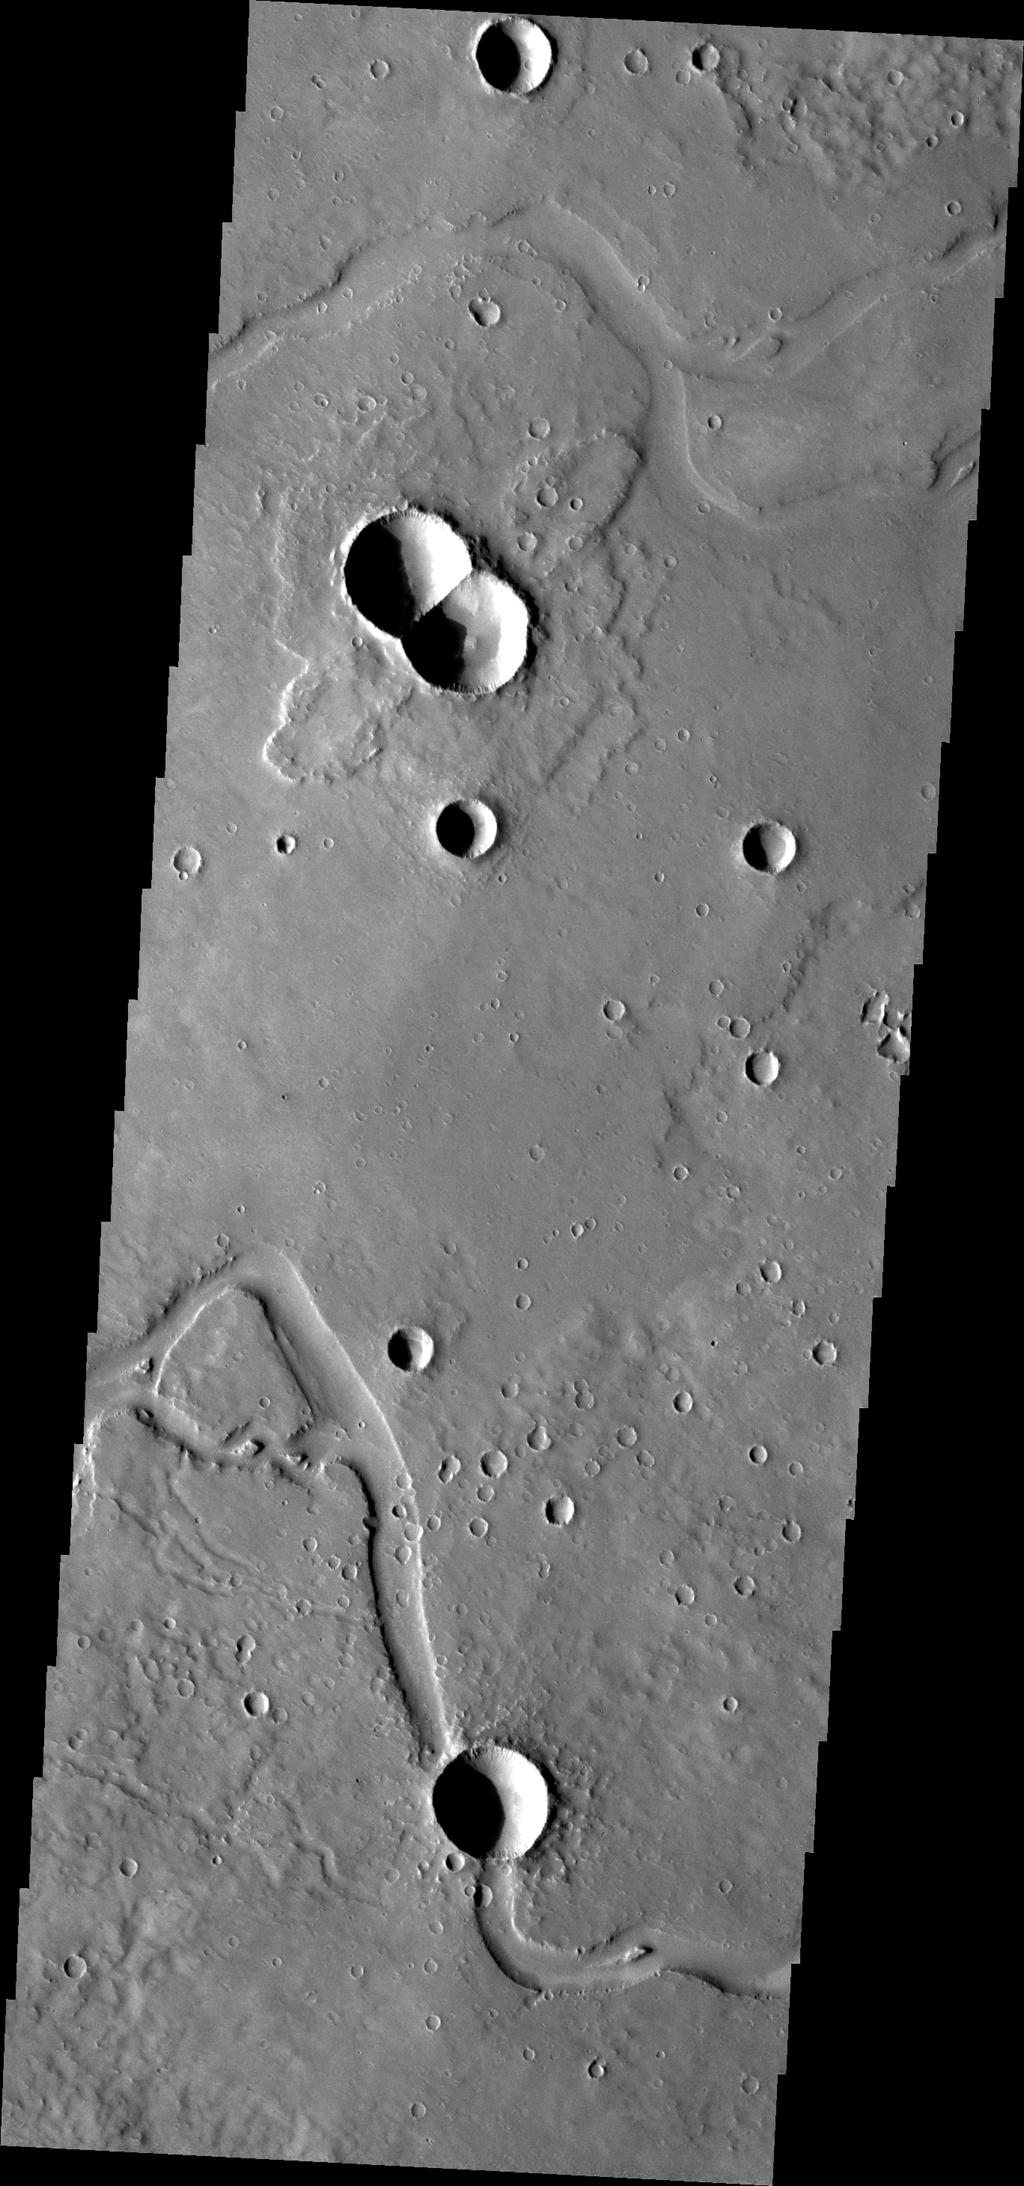 This image from NASA's Mars Odyssey is of a doublet crater located in Utopia Planitia, near the Elysium Volcanic region. Doublet craters are formed by simultaneous impact of a meteor that broke into two pieces prior to hitting the surface.